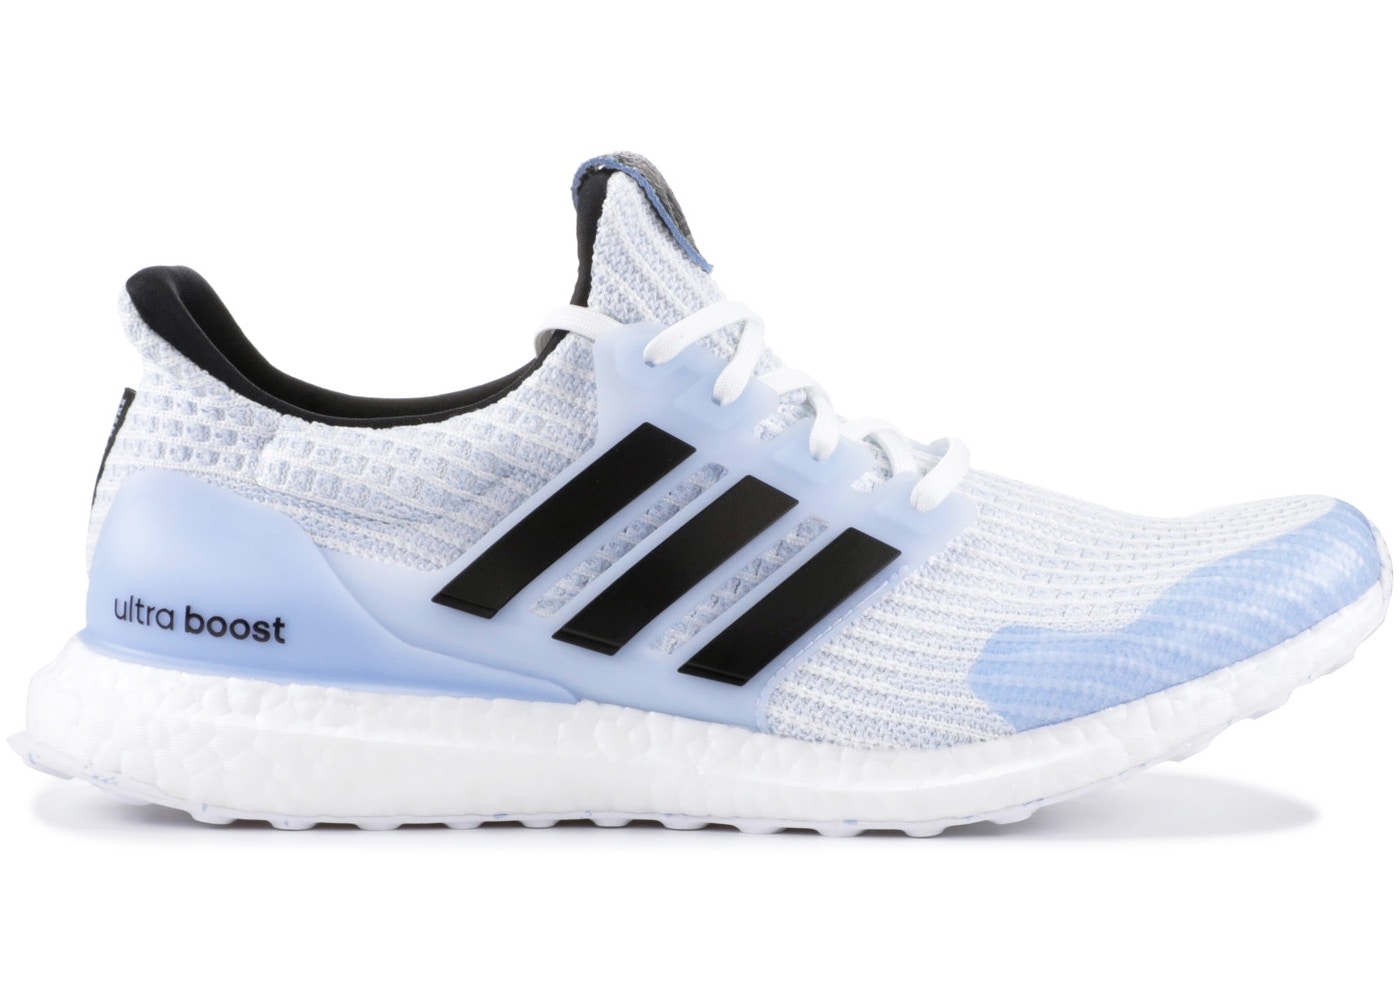 33dab50b adidas Ultra Boost 4.0 Game of Thrones White Walkers - EE3708